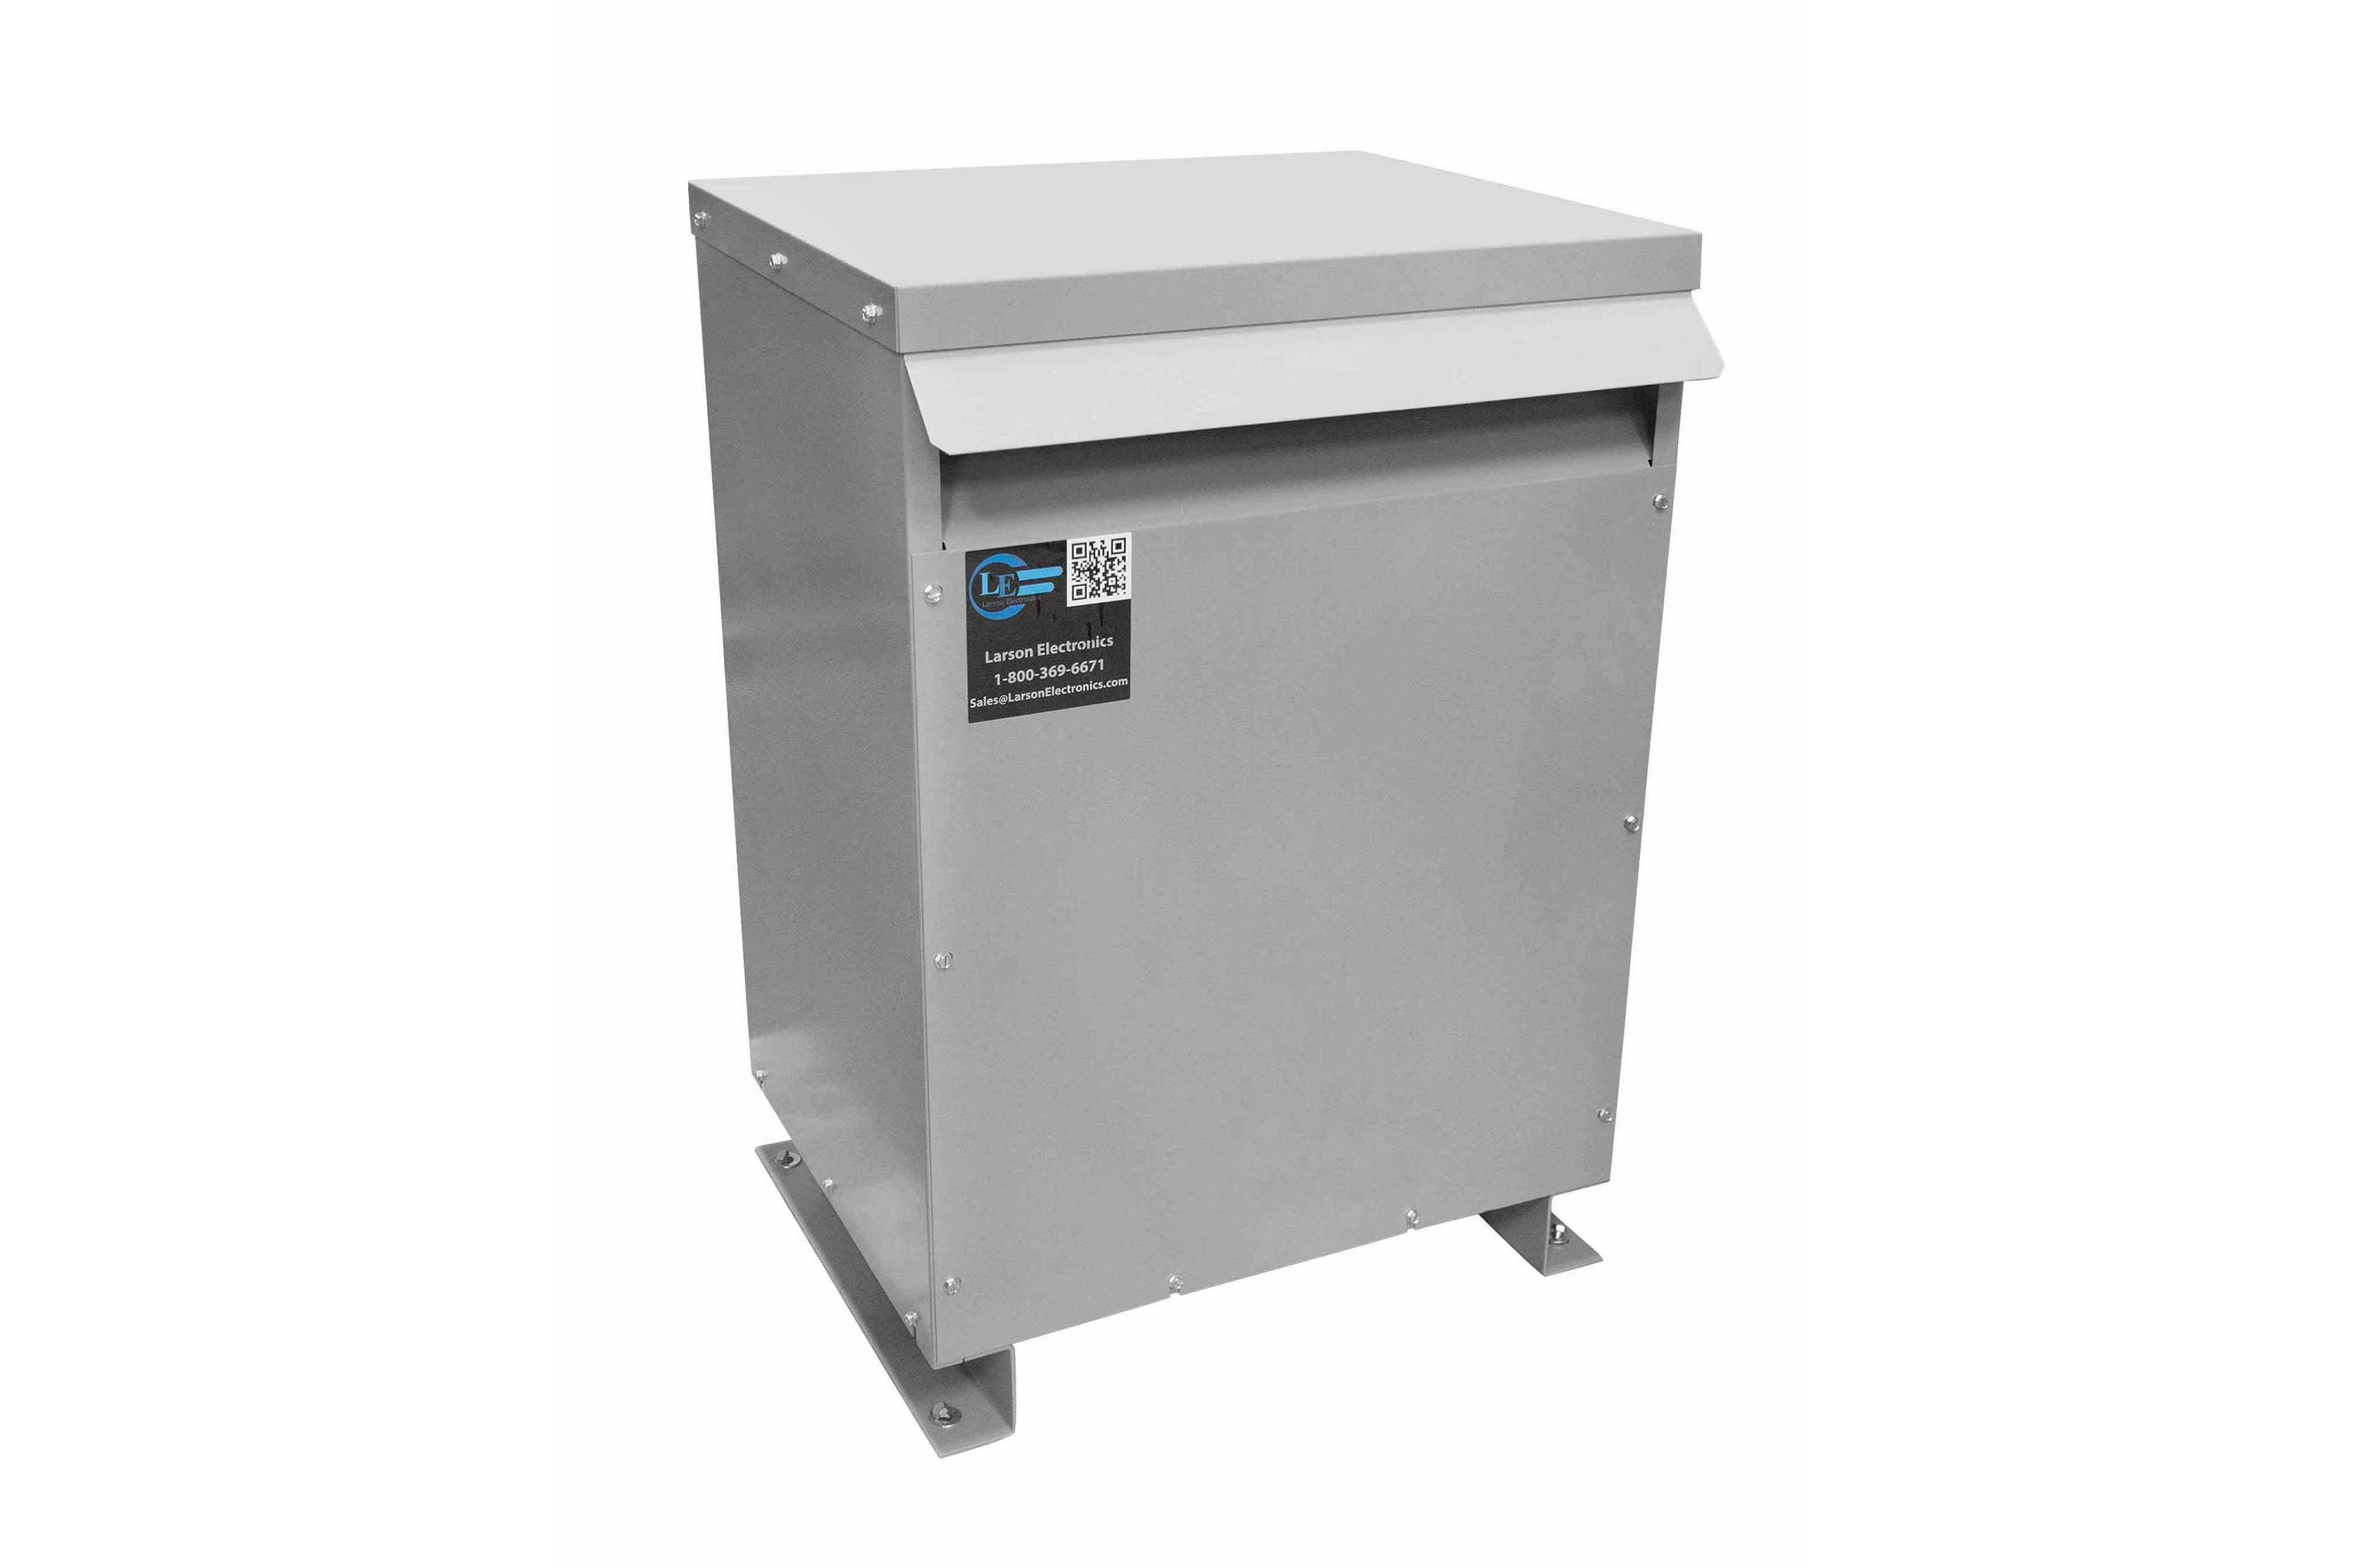 9 kVA 3PH Isolation Transformer, 220V Wye Primary, 208V Delta Secondary, N3R, Ventilated, 60 Hz